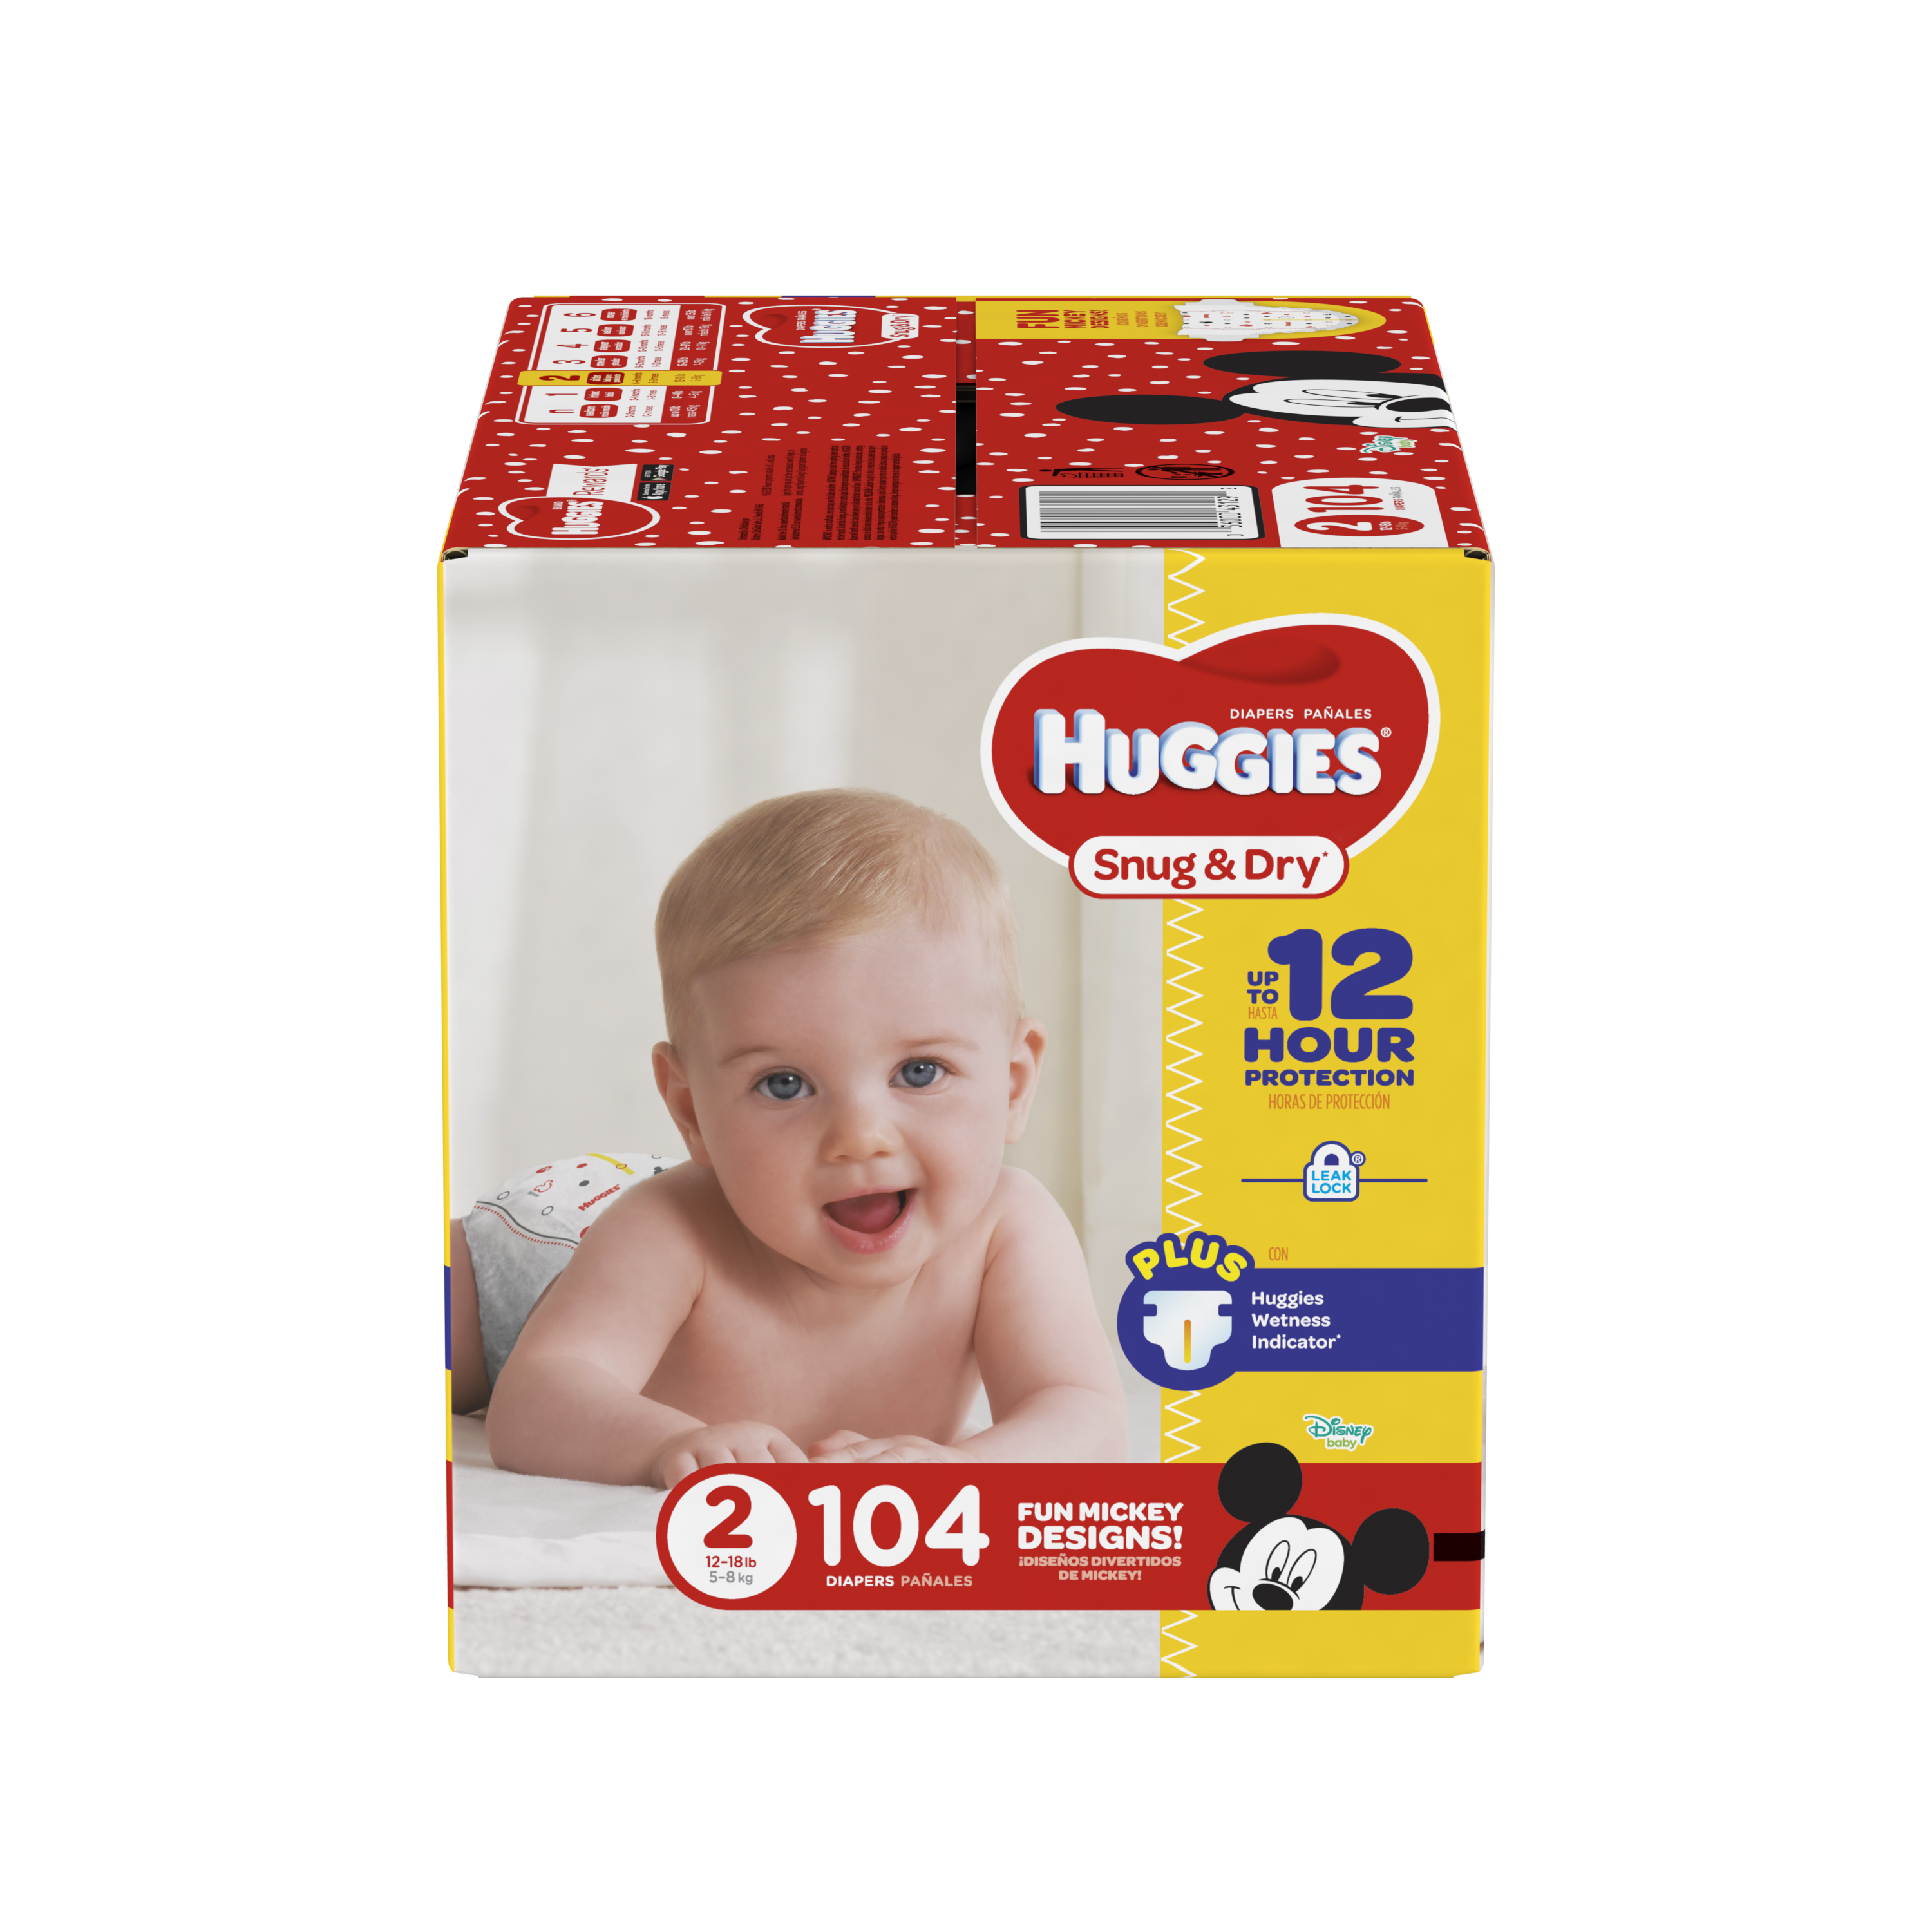 HUGGIES Snug & Dry Diapers, Size 2, 104 Count